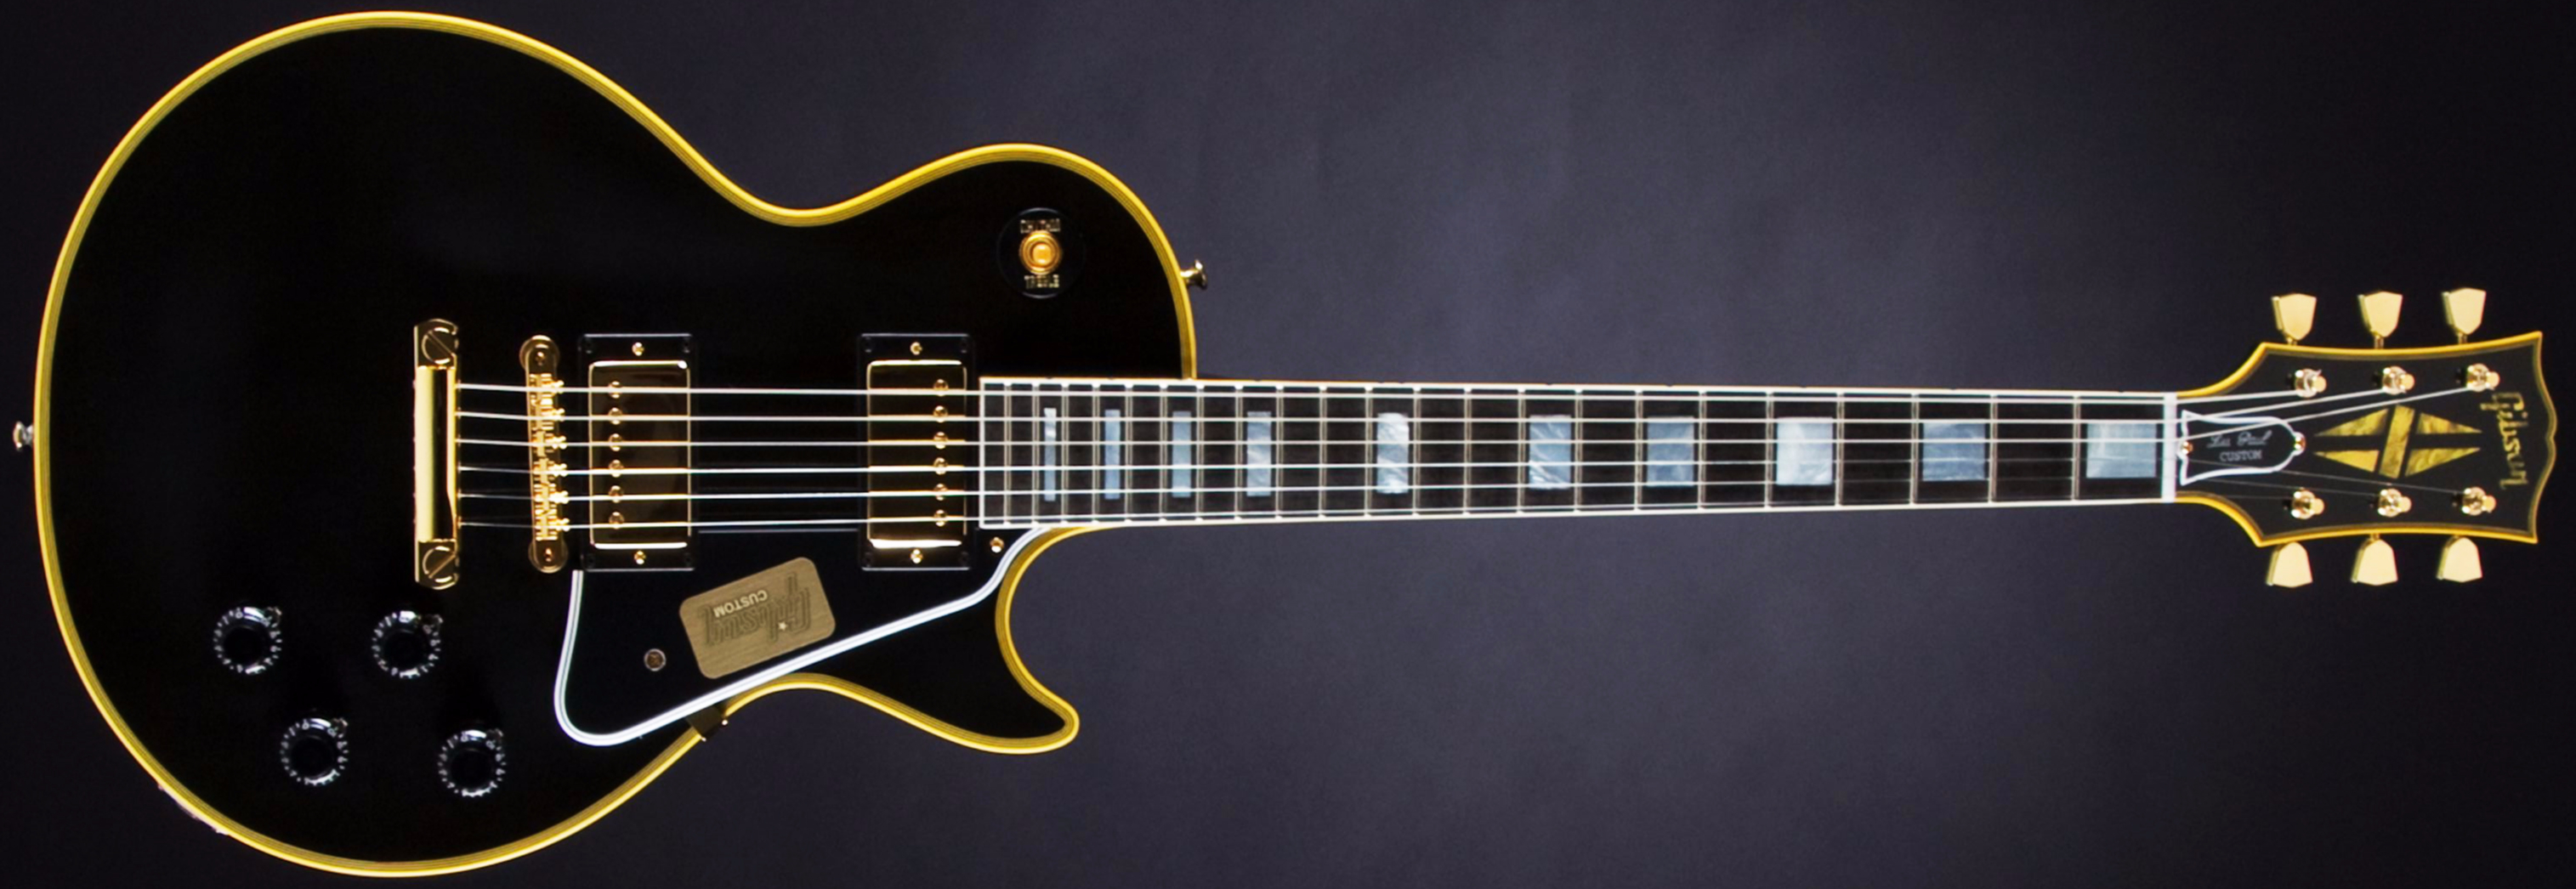 GIBSON 1957 True Historic Les Paul Custom Vintage Ebony #75314